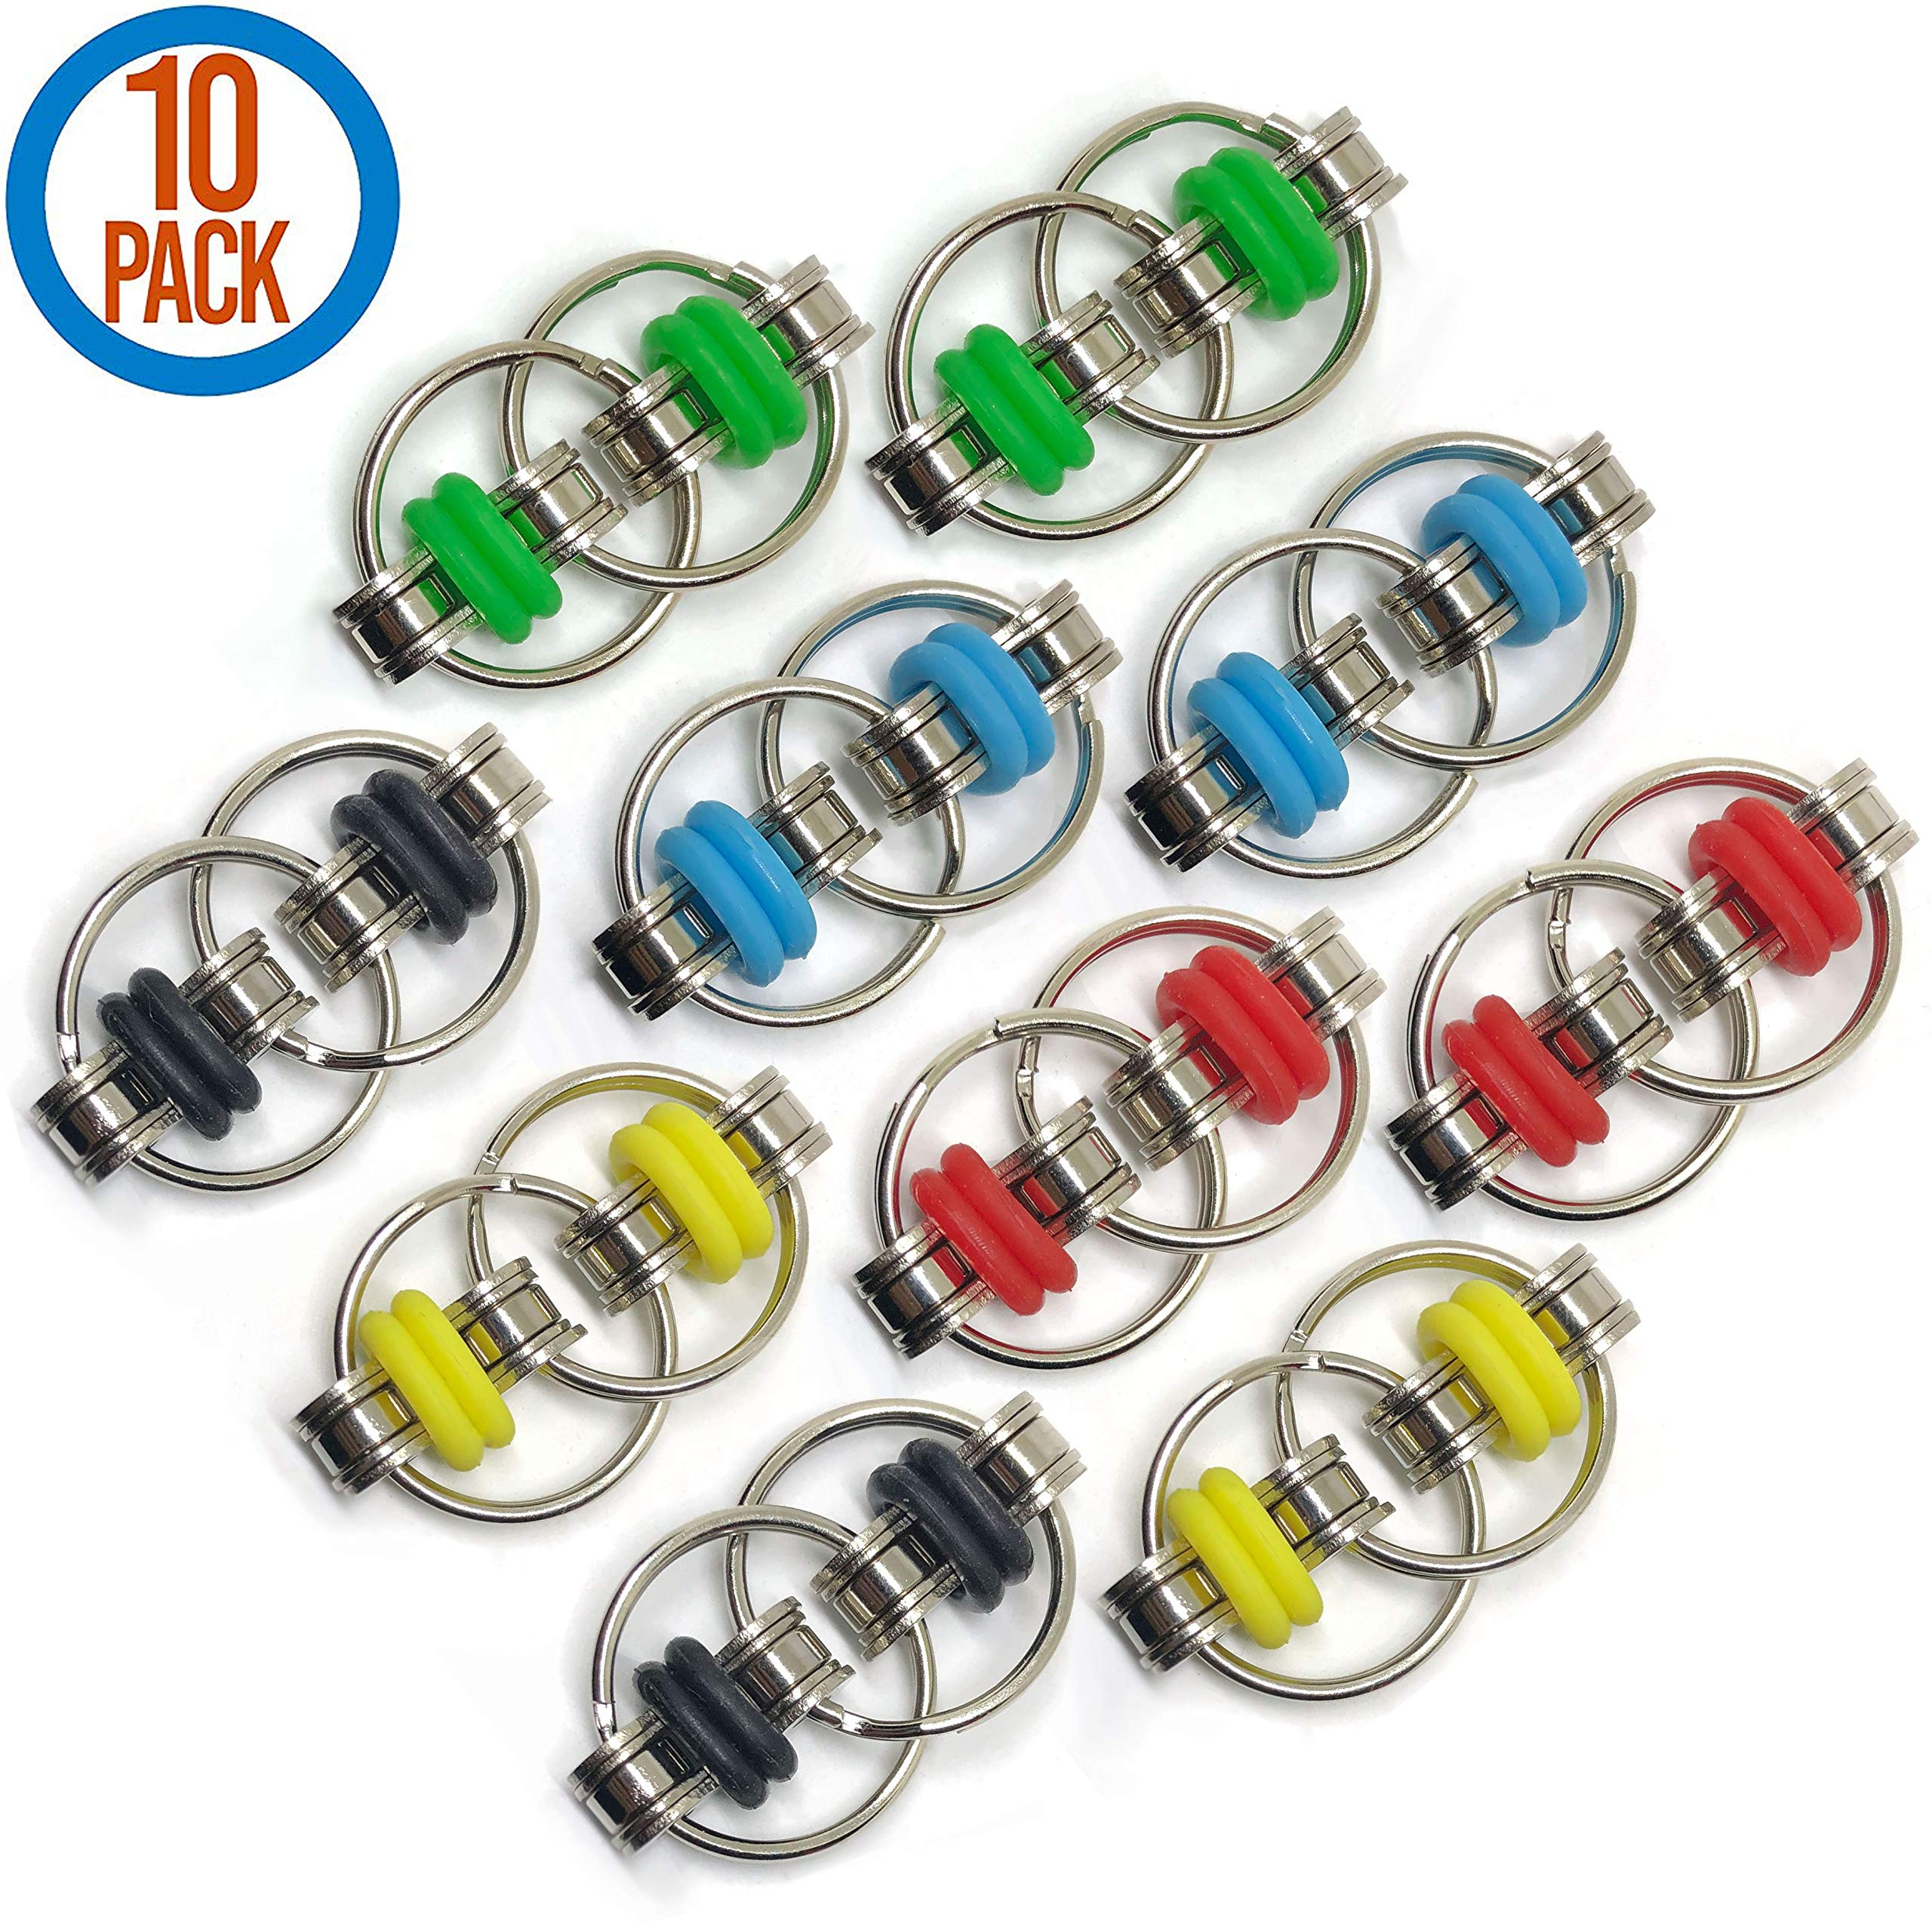 Fidget Toy Flippy Chain - Stress Relief Perfect for ADHD, ADD, Anxiety in Classroom or Office for Students, Kids or Adults Stocking Stuffers Gifts for Him or Her in Bulk (10 Pack)